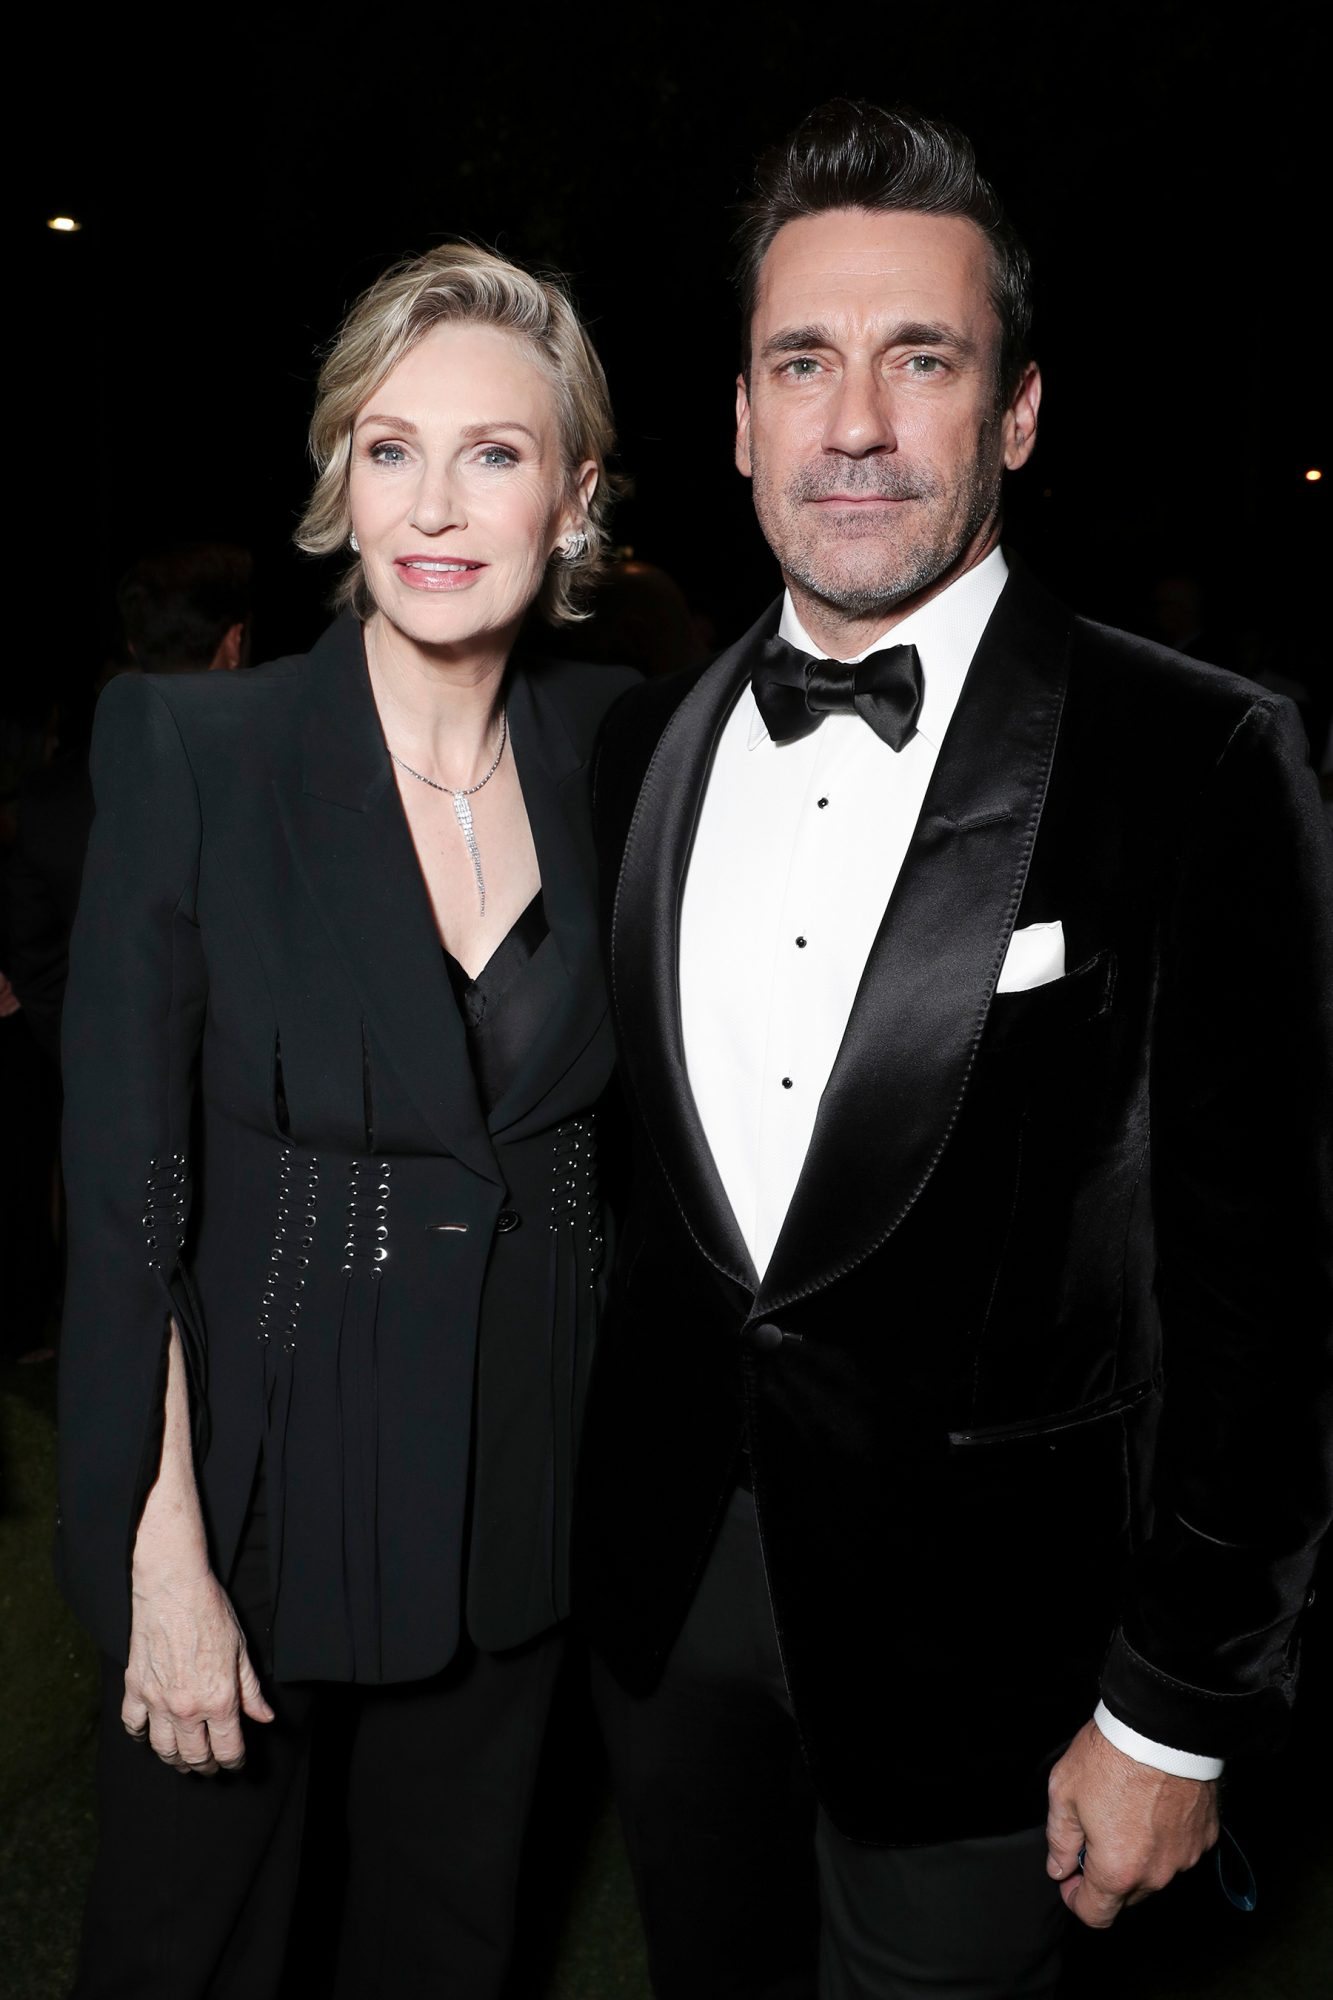 Jane Lynch and Jon Hamm